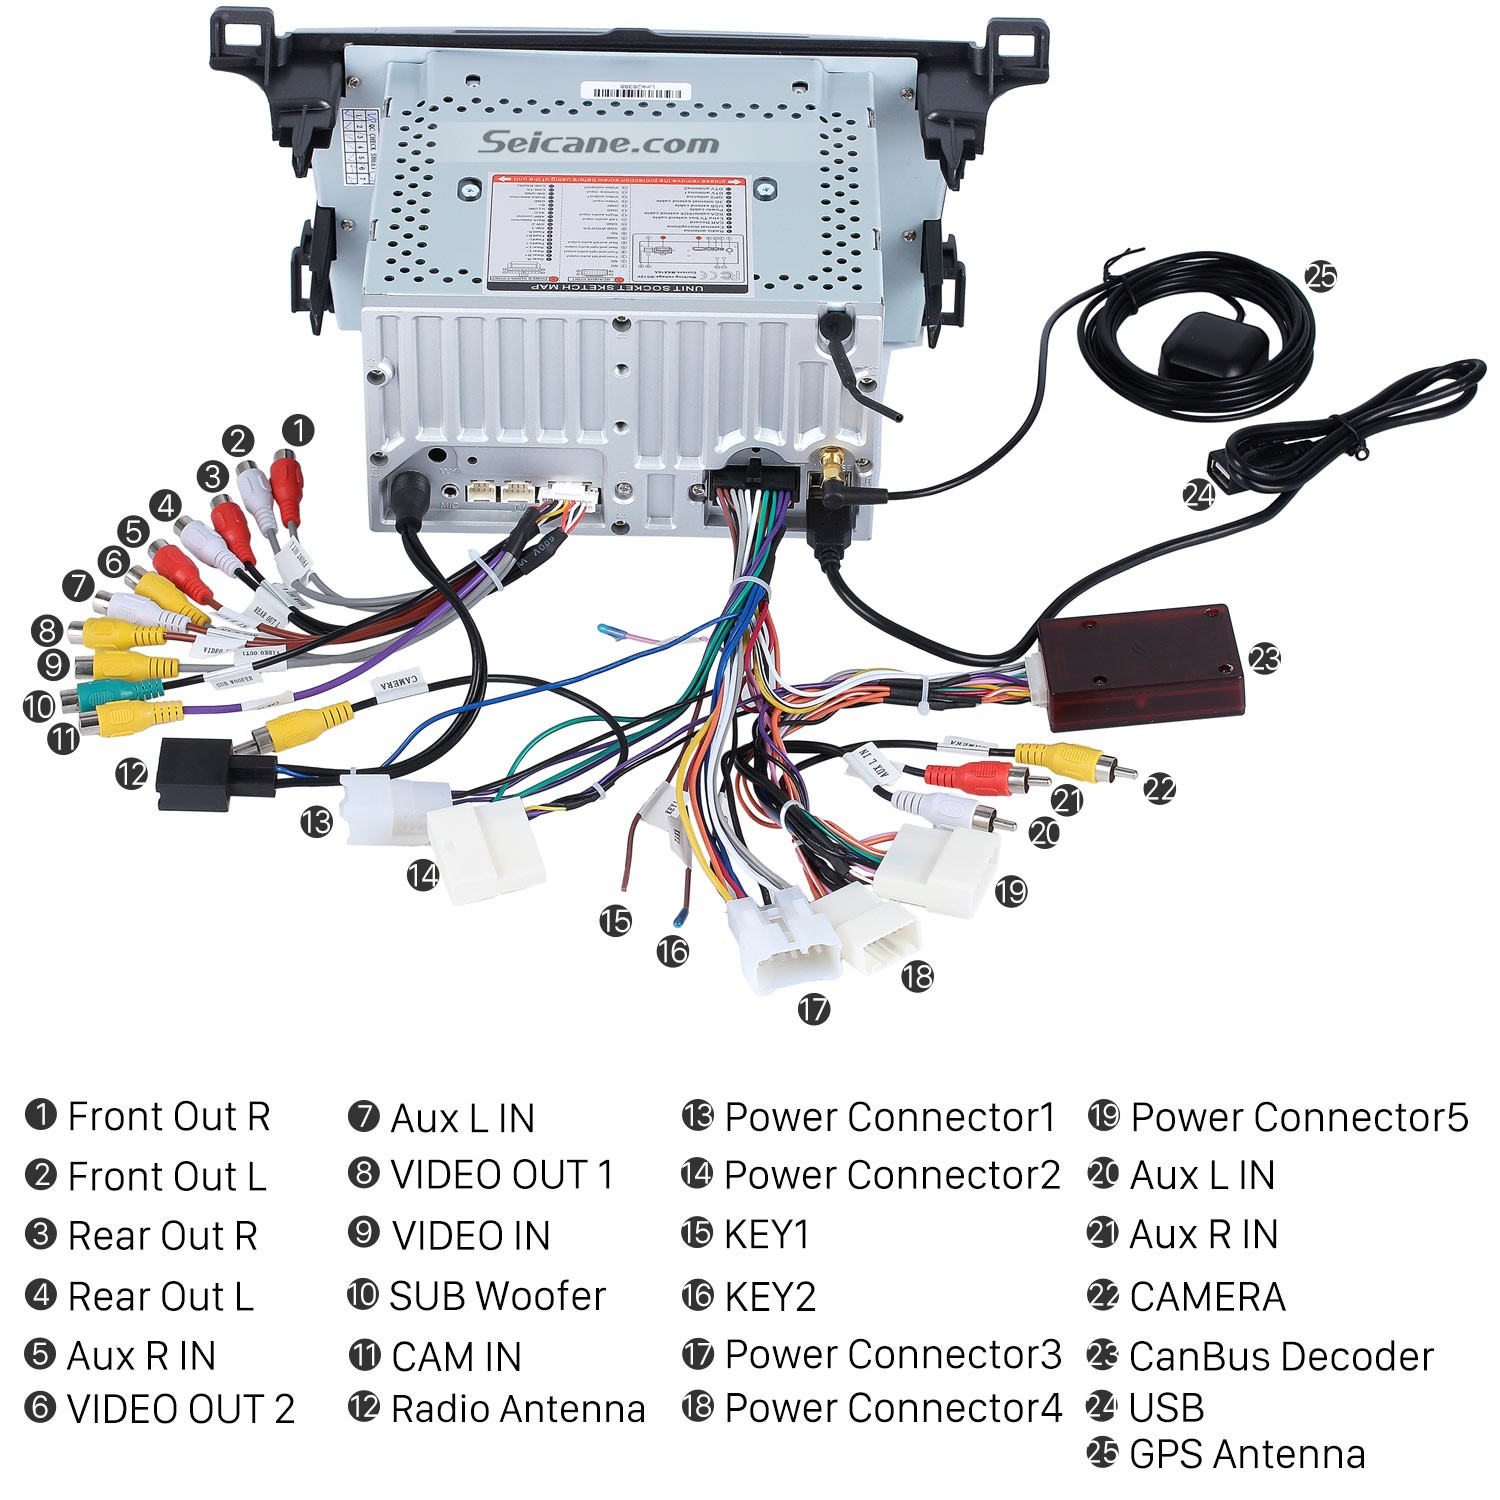 9750 Toyota Stereo Wiring Diagram Trusted Diagrams Microwave Oven For Model Jvm1440bh01 Portal U2022